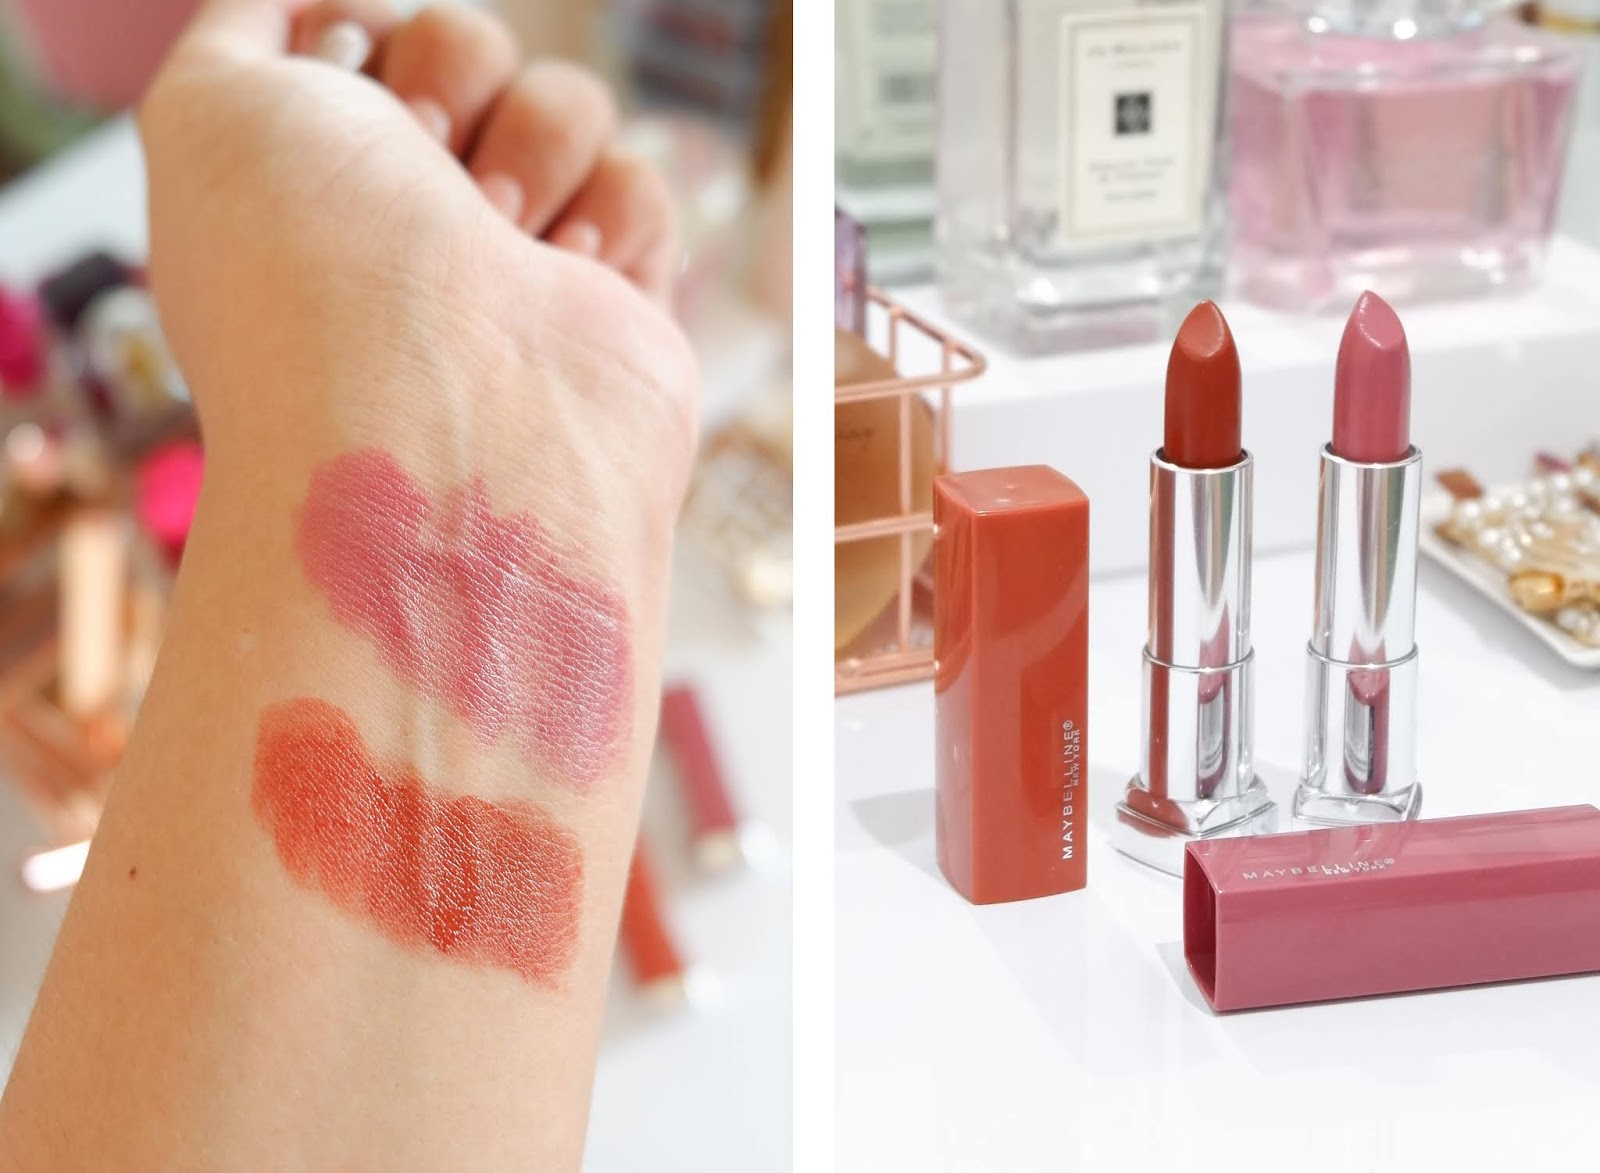 MAYBELLINE: COLOR SENSATION MADE FOR ALL LIPSTICK REVIEW (PINK FOR ME & SPICE FOR ME)